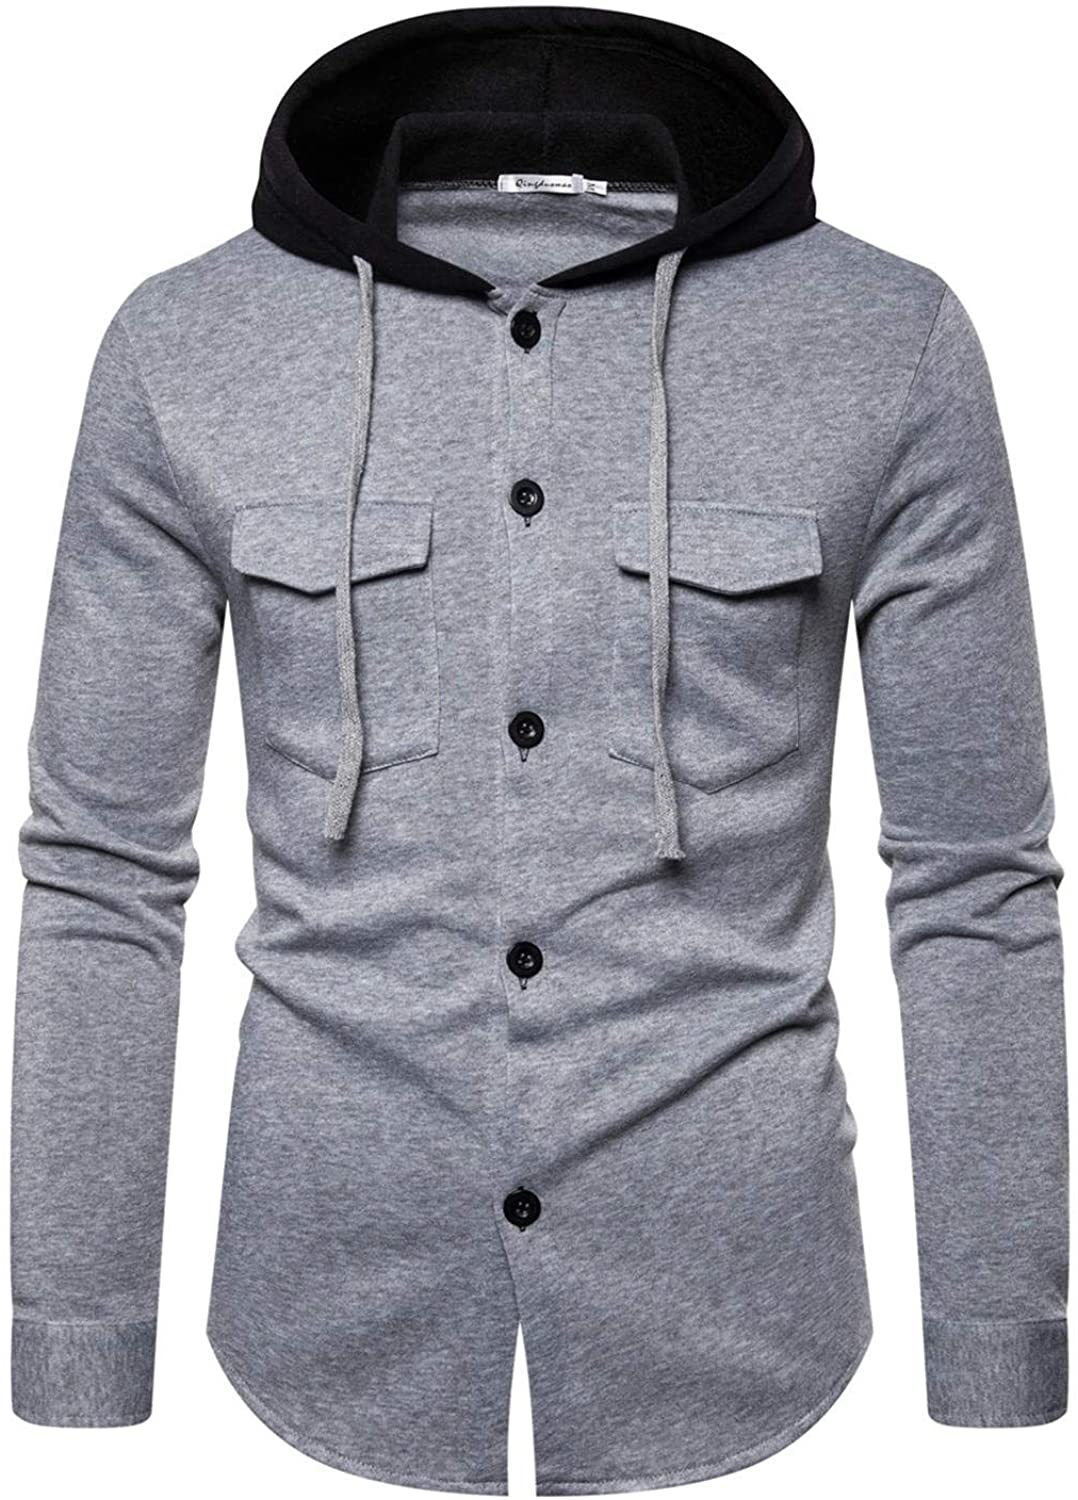 Soluo Men?s Slim Fit Hoodie Varsity Baseball Button Through Jacket Coats Outwear with Hooded